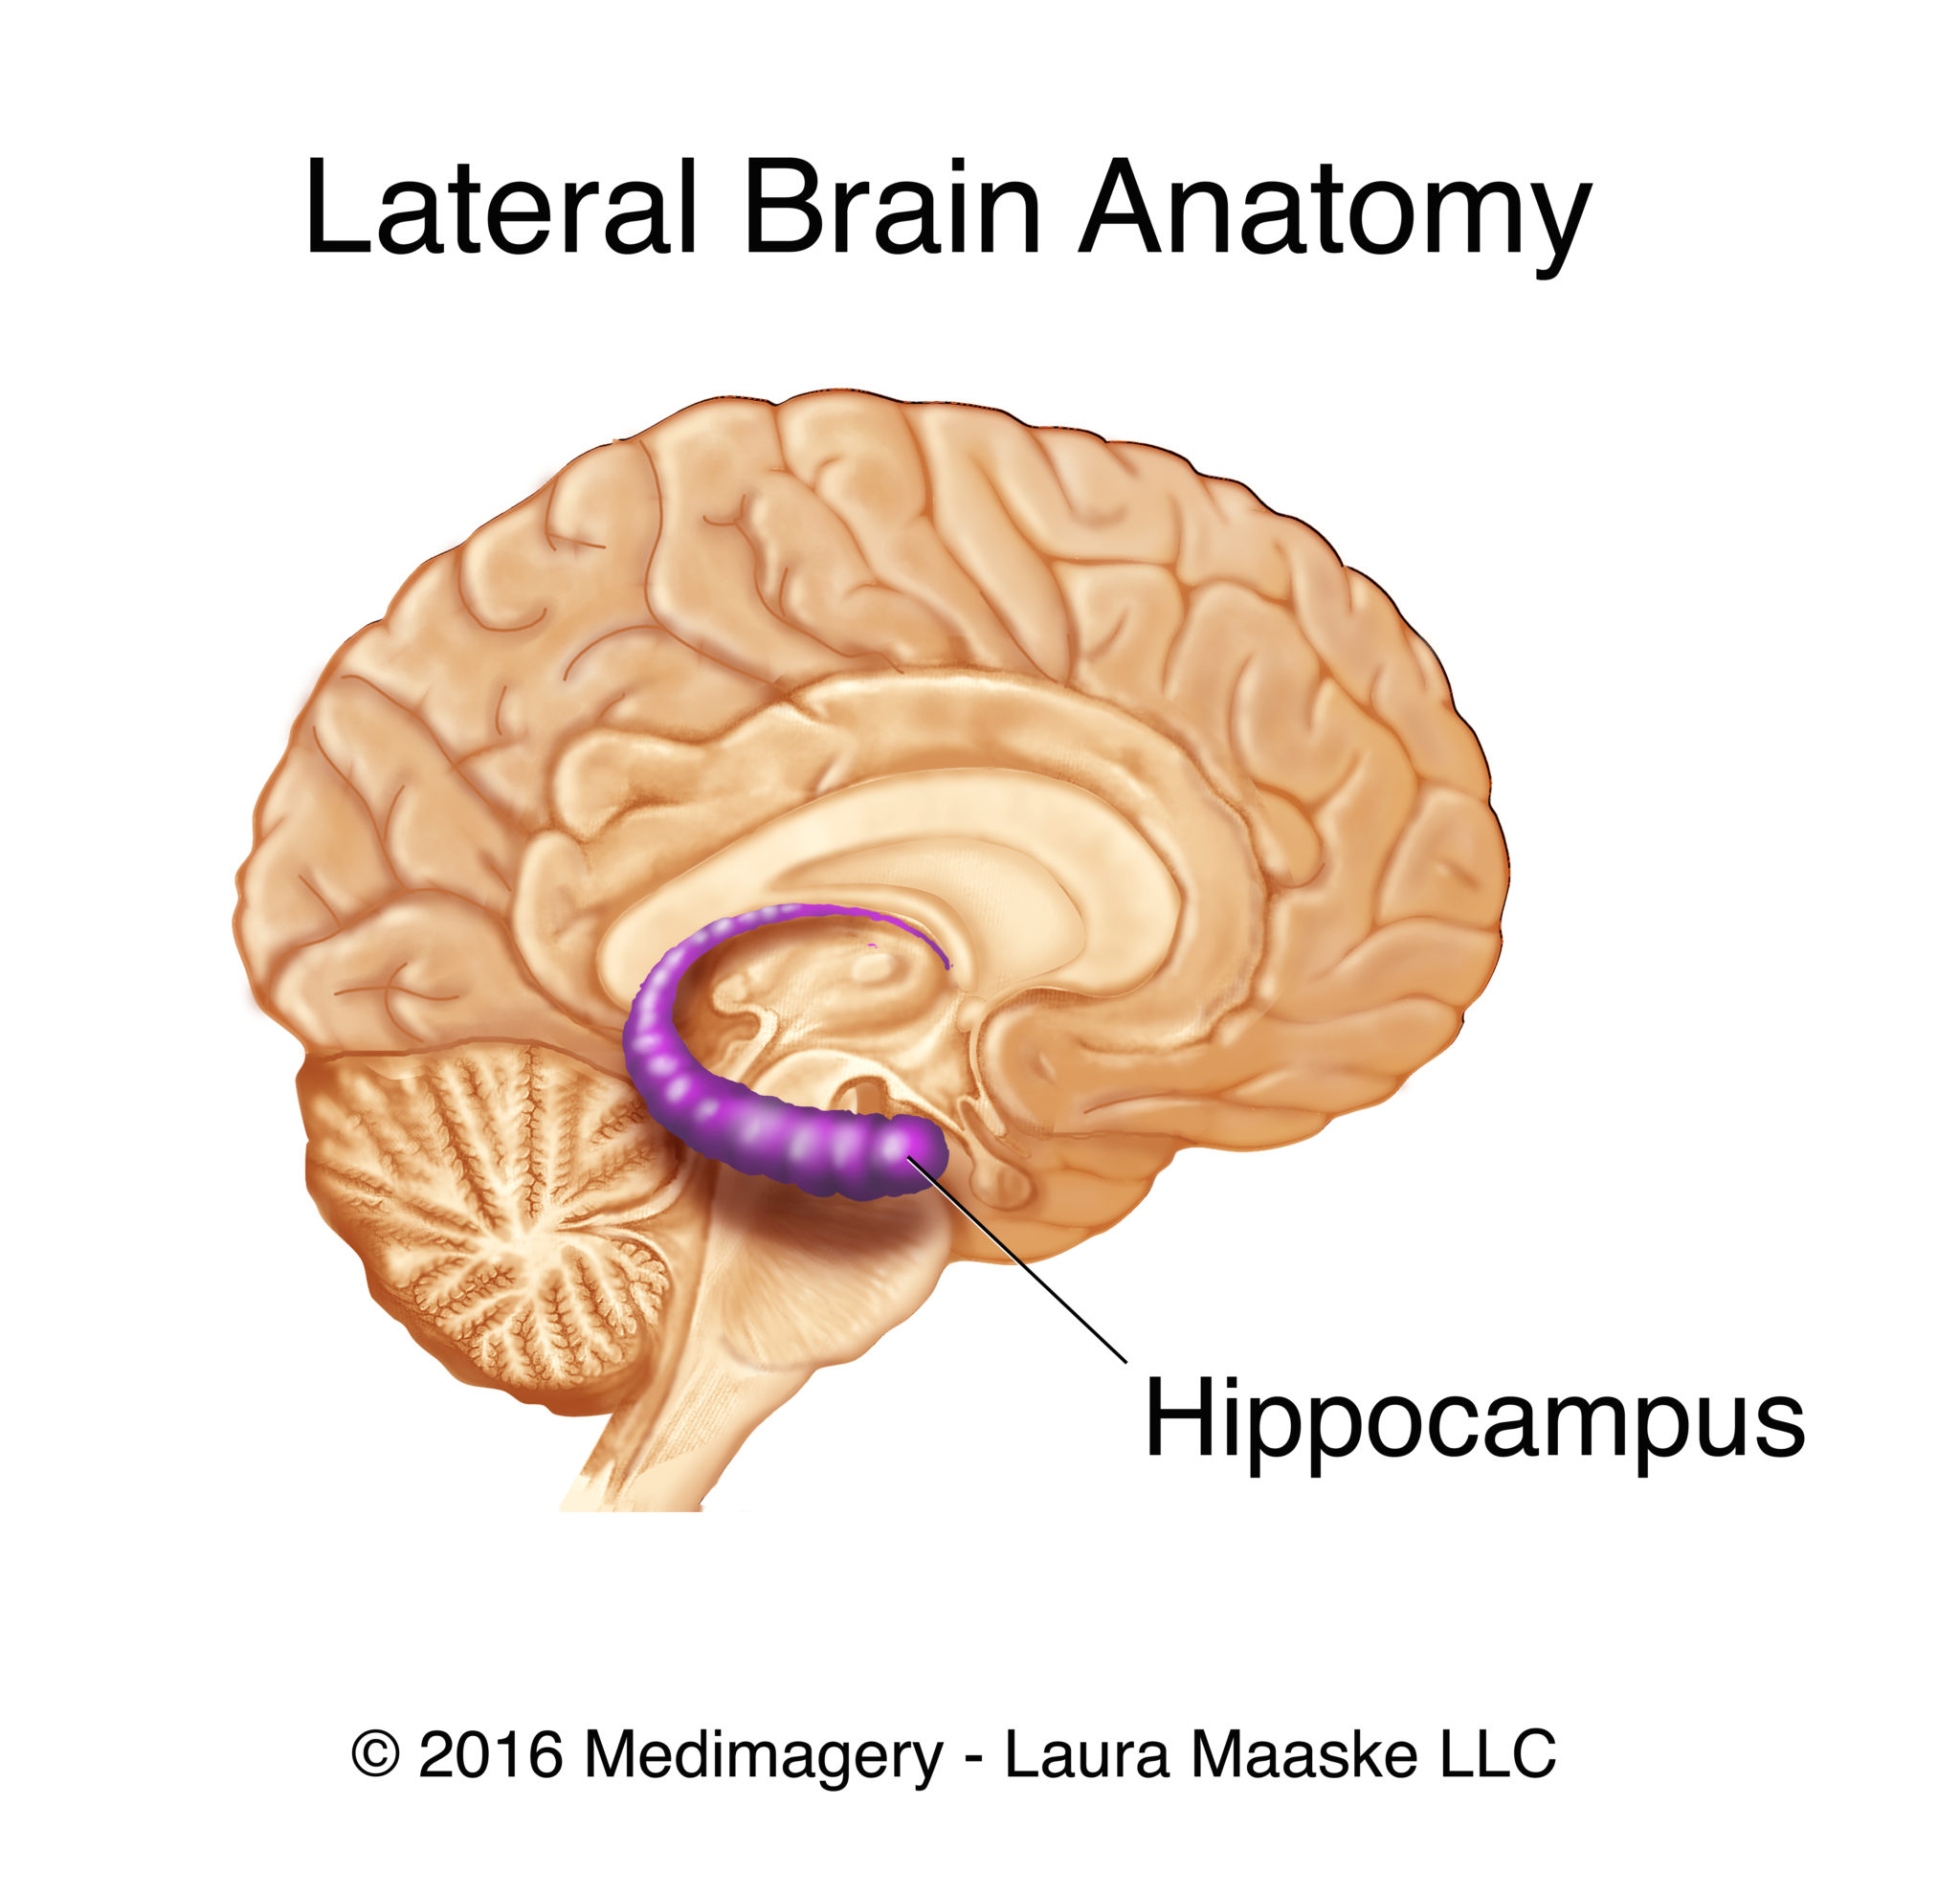 hippocampus illustration Archives - Medical Illustrations ...